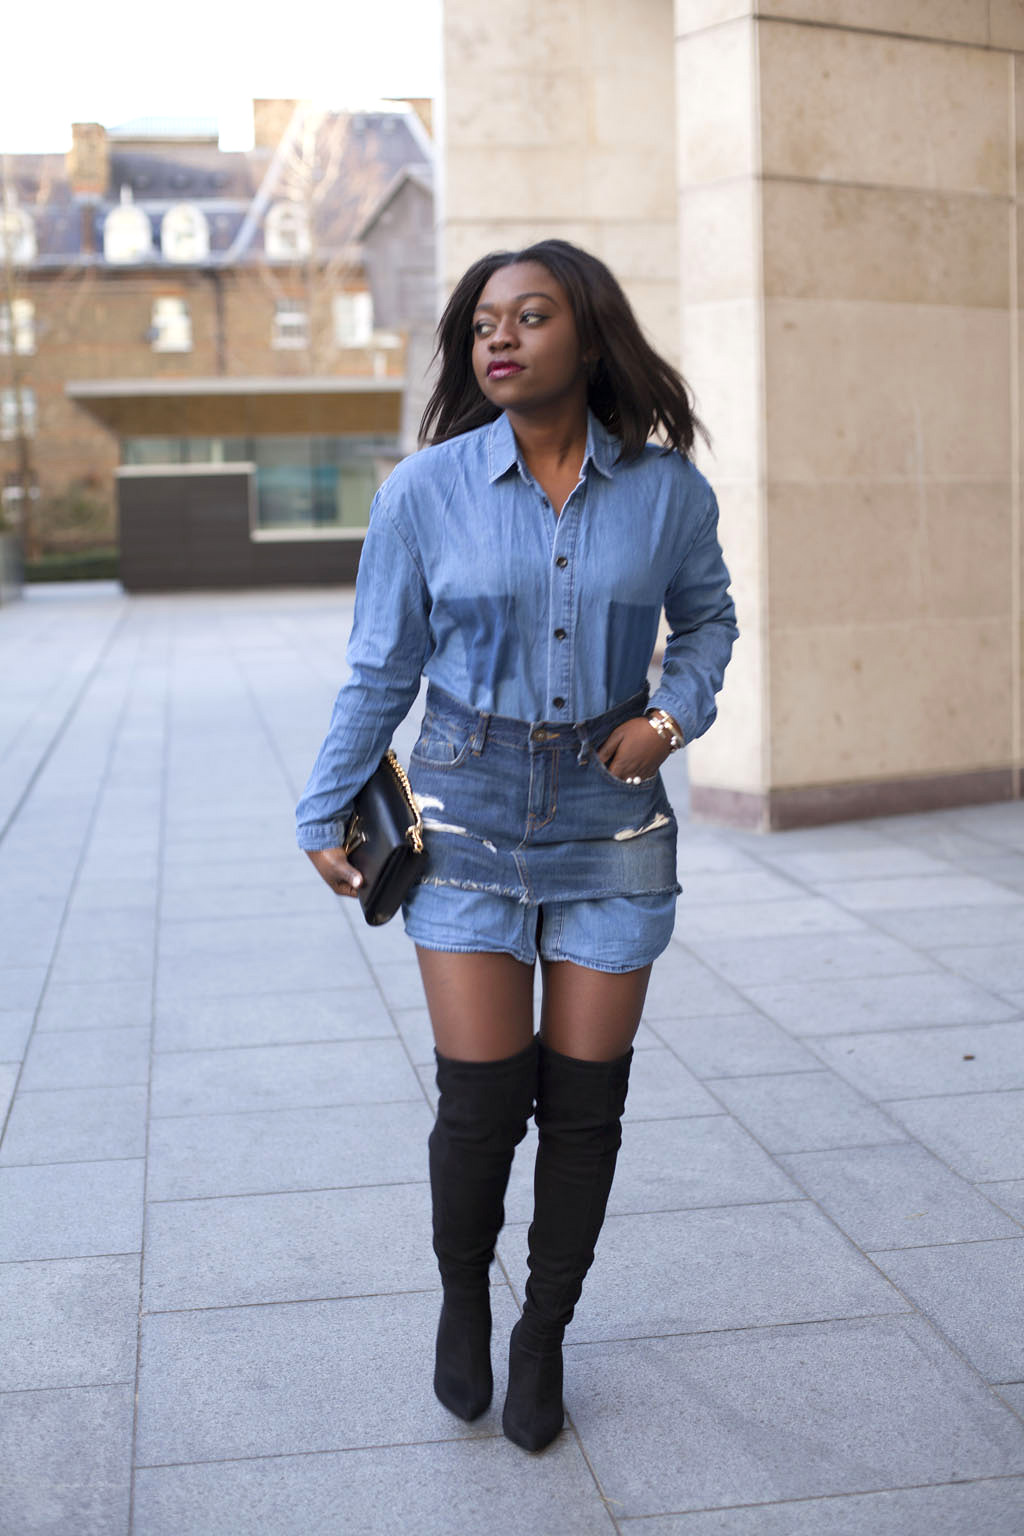 denim shirt levis denim skirt denim black the